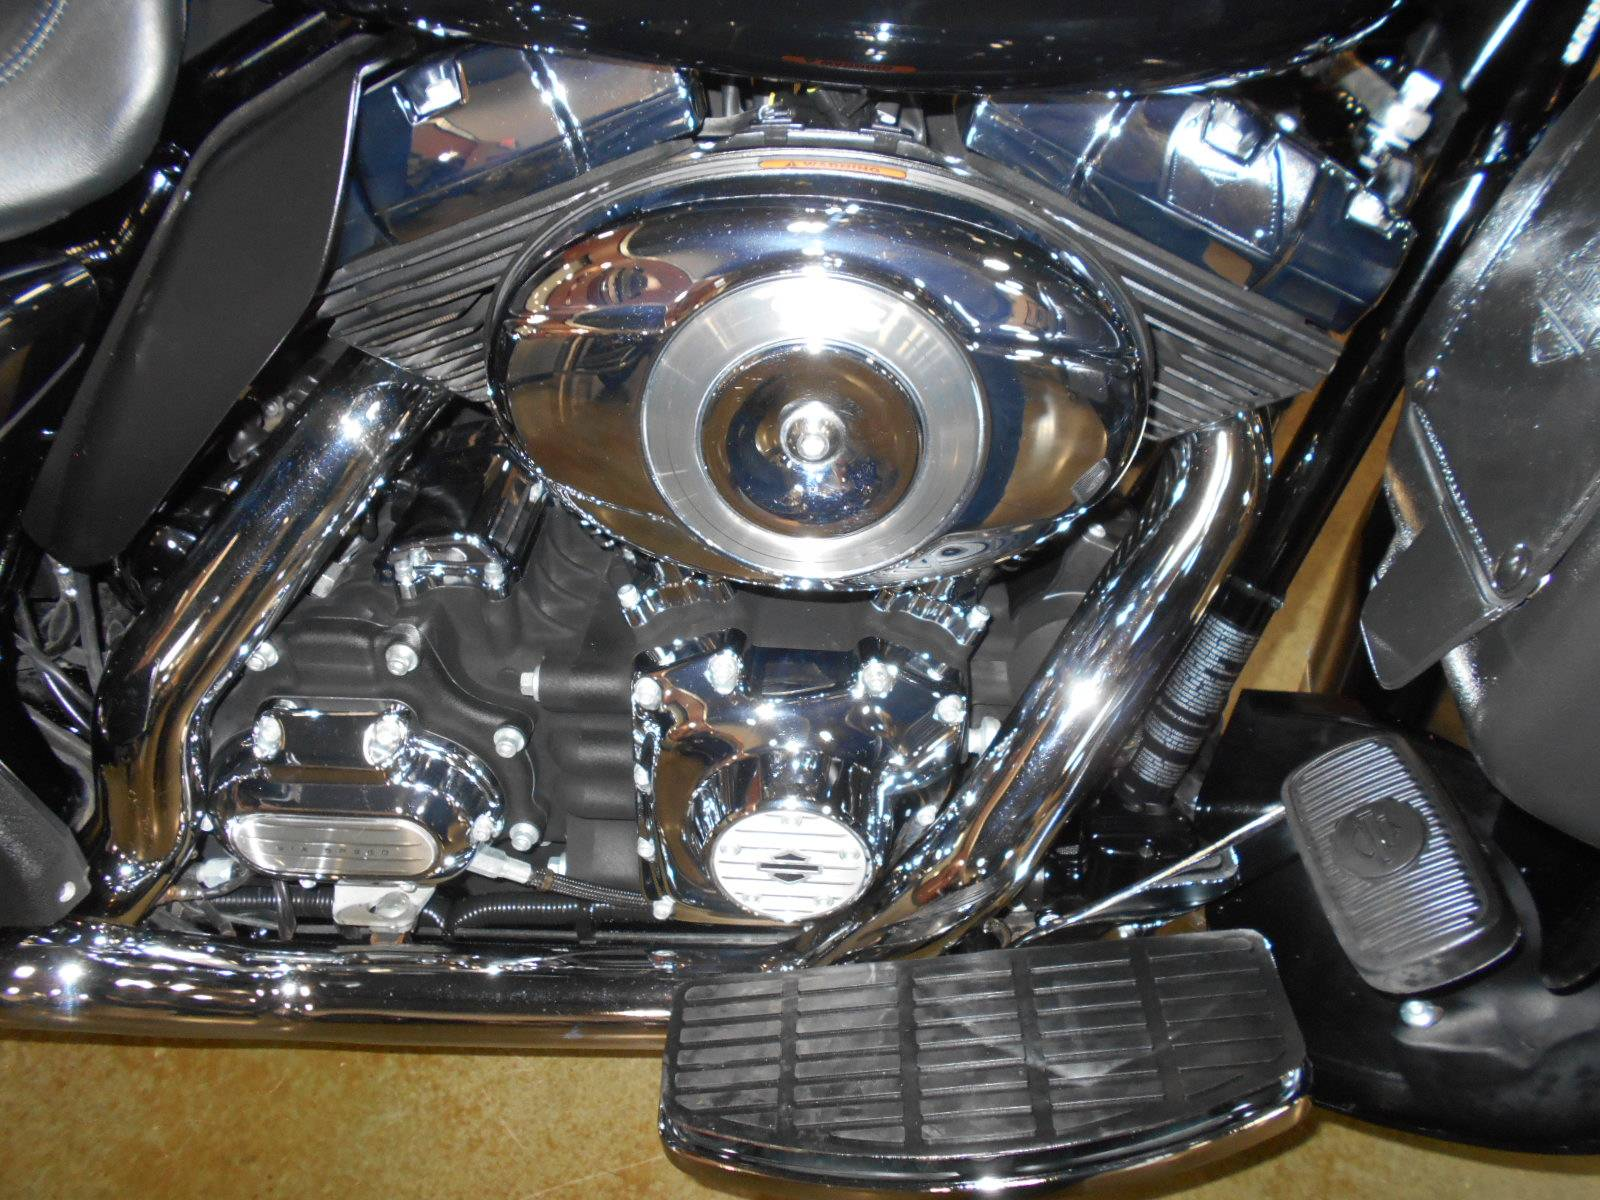 2012 Harley-Davidson Electra Glide® Ultra Limited in Mauston, Wisconsin - Photo 5